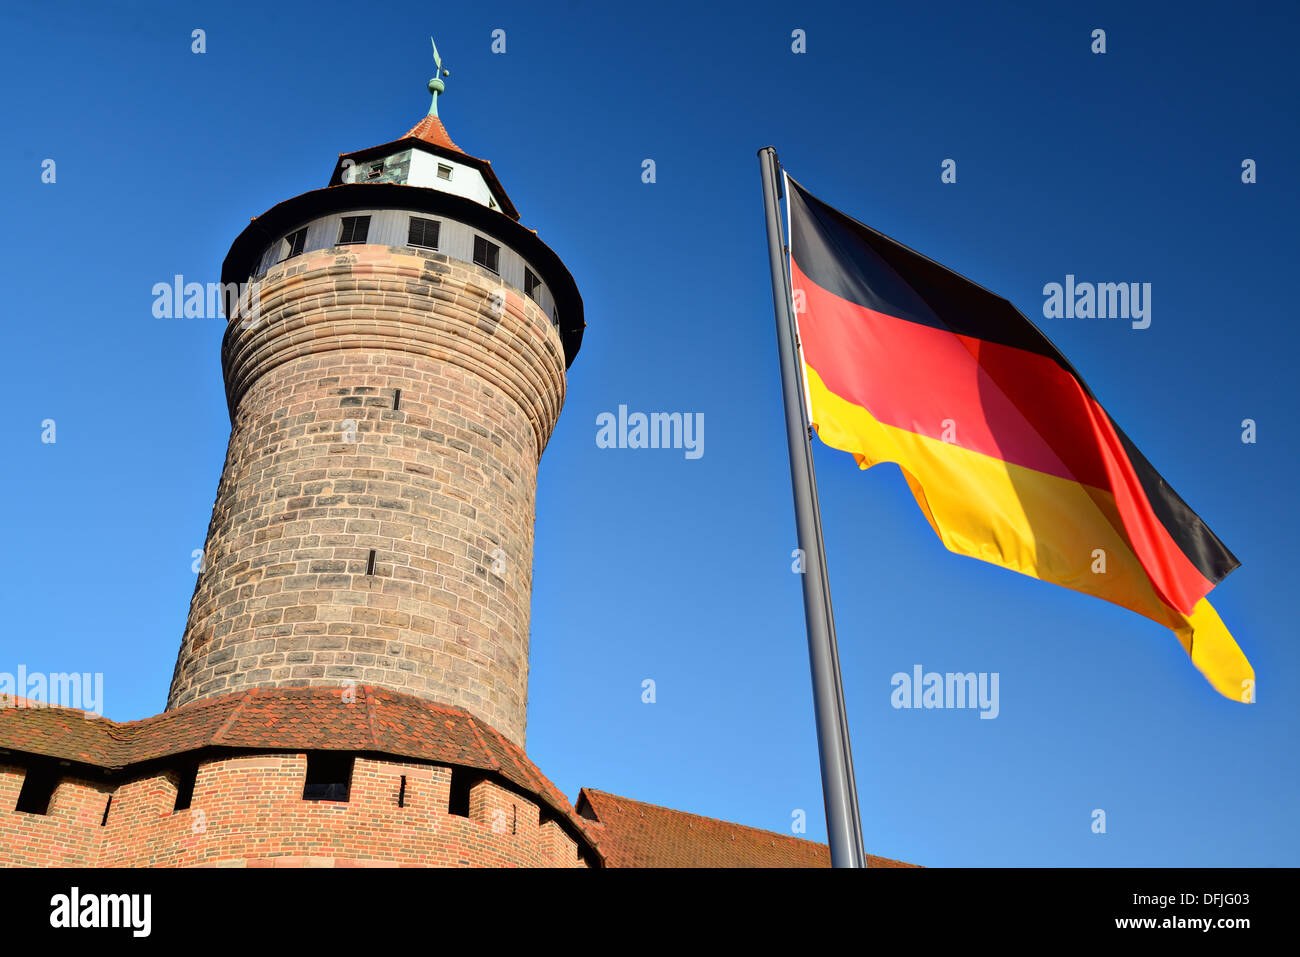 German flag flies at Nuremberg Castle in Nuremberg, Germany. - Stock Image